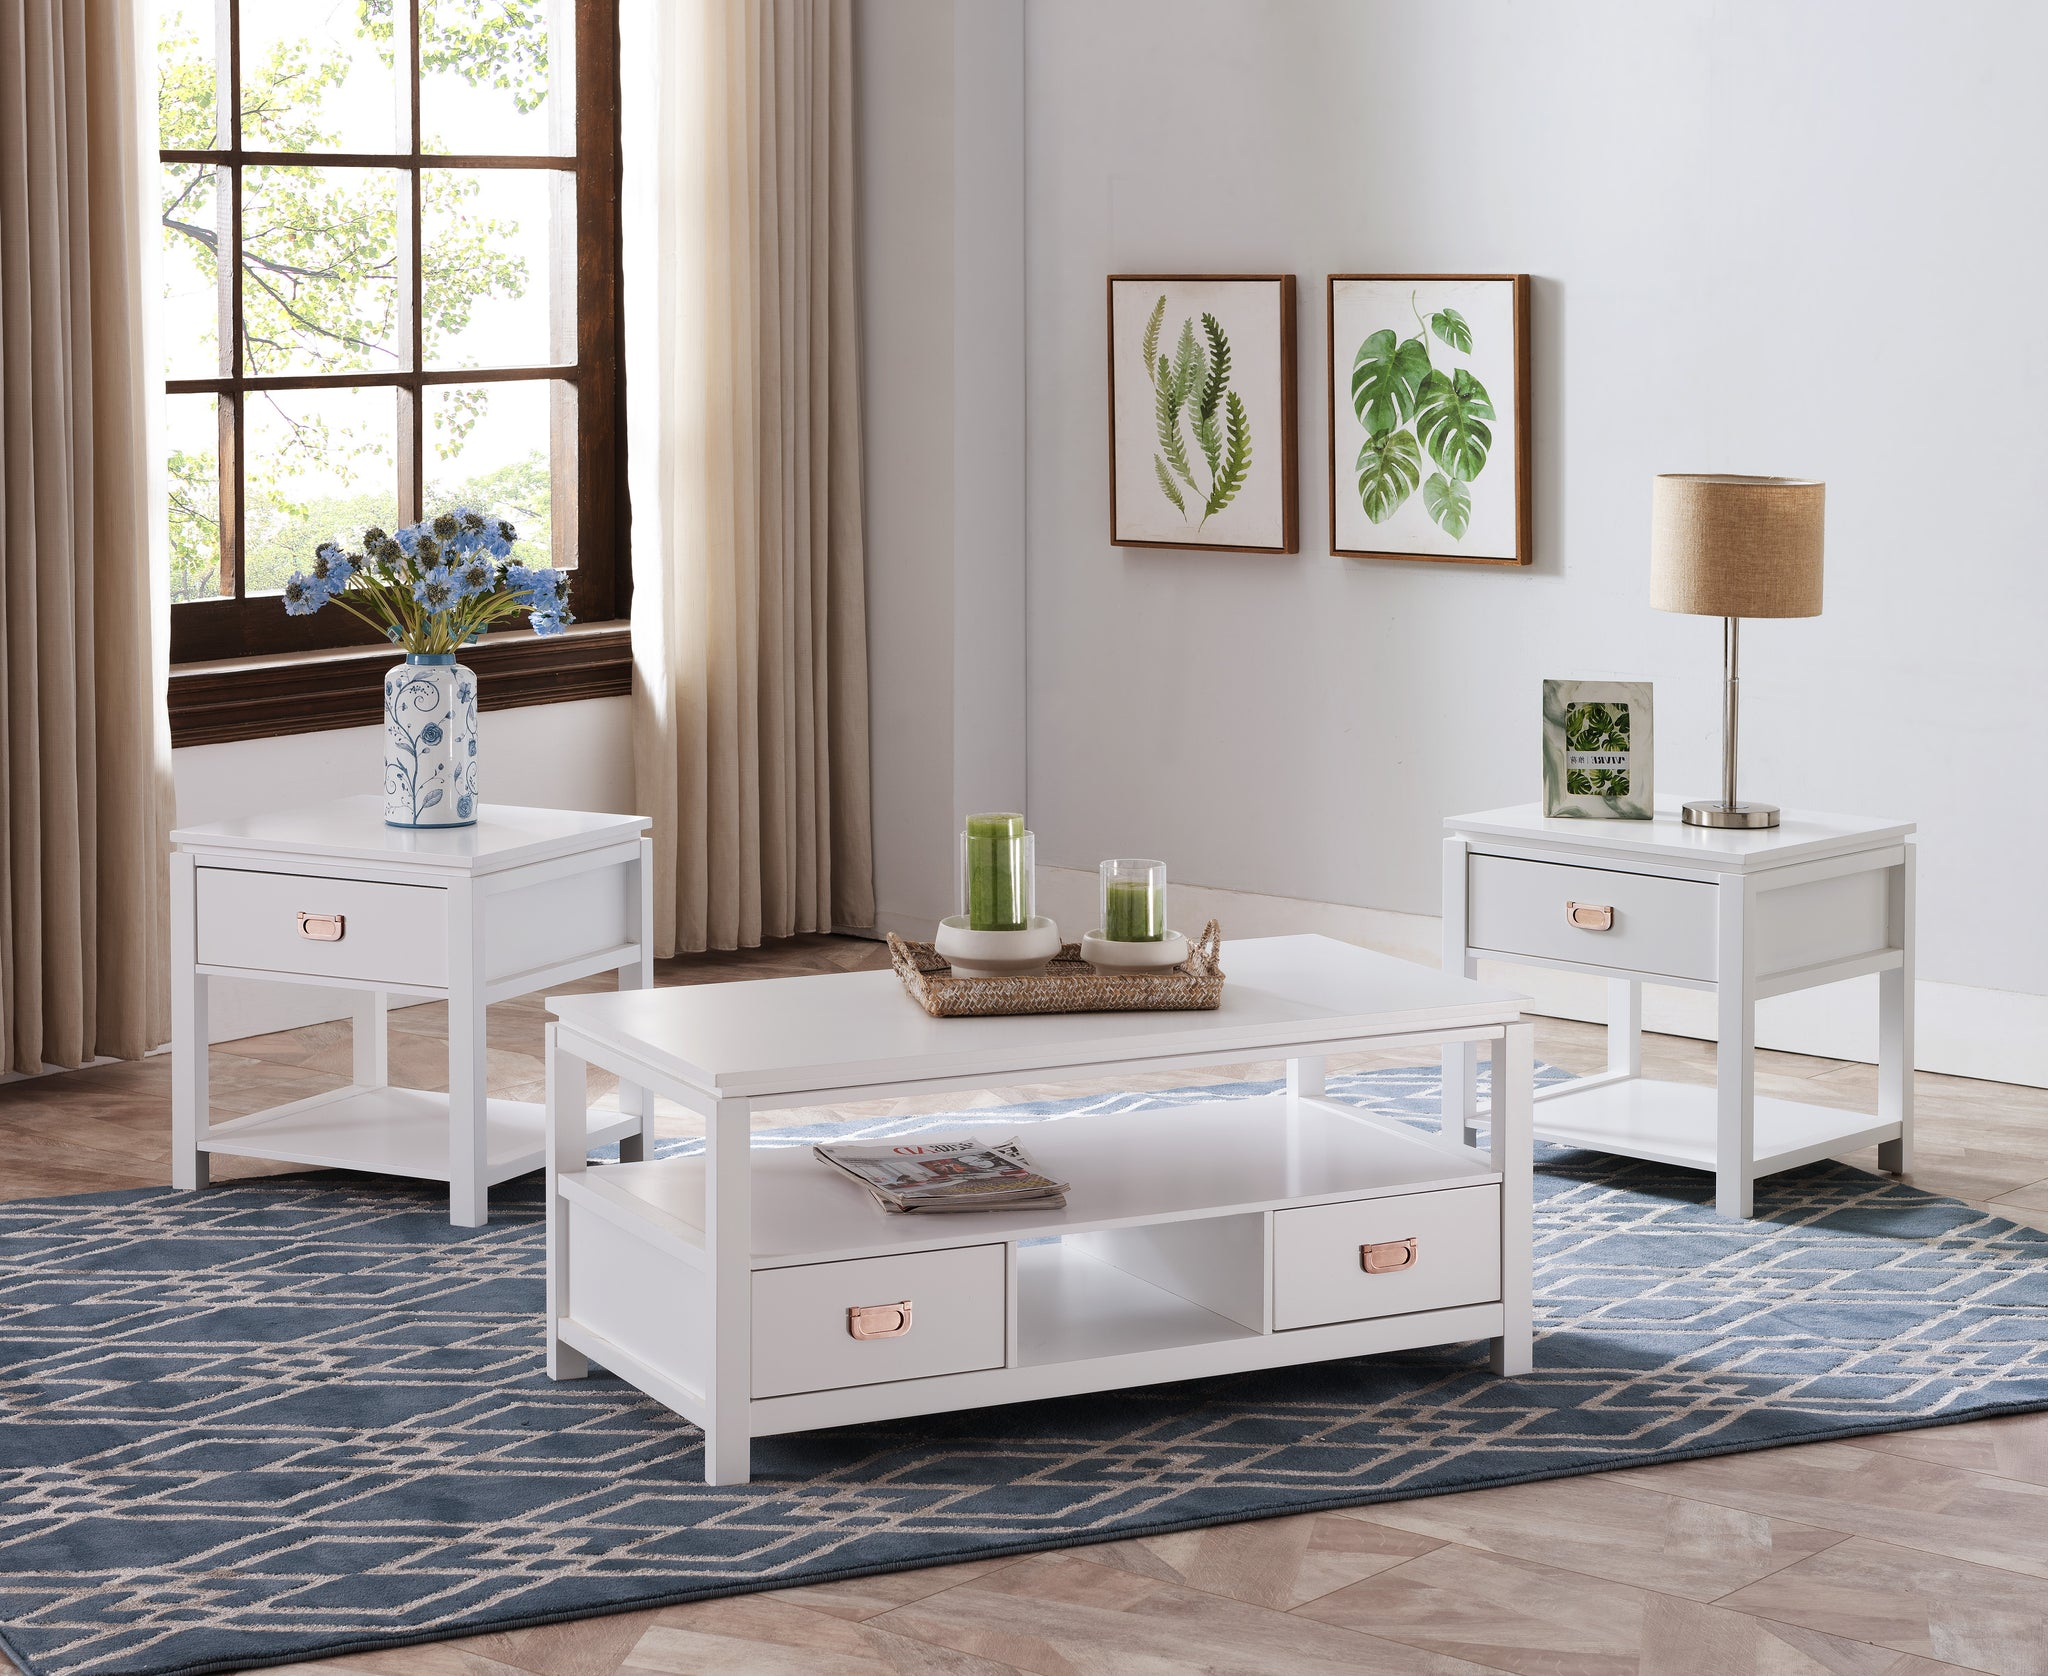 - Adelaide 3 Piece Storage Coffee Table Set, White Wood, With